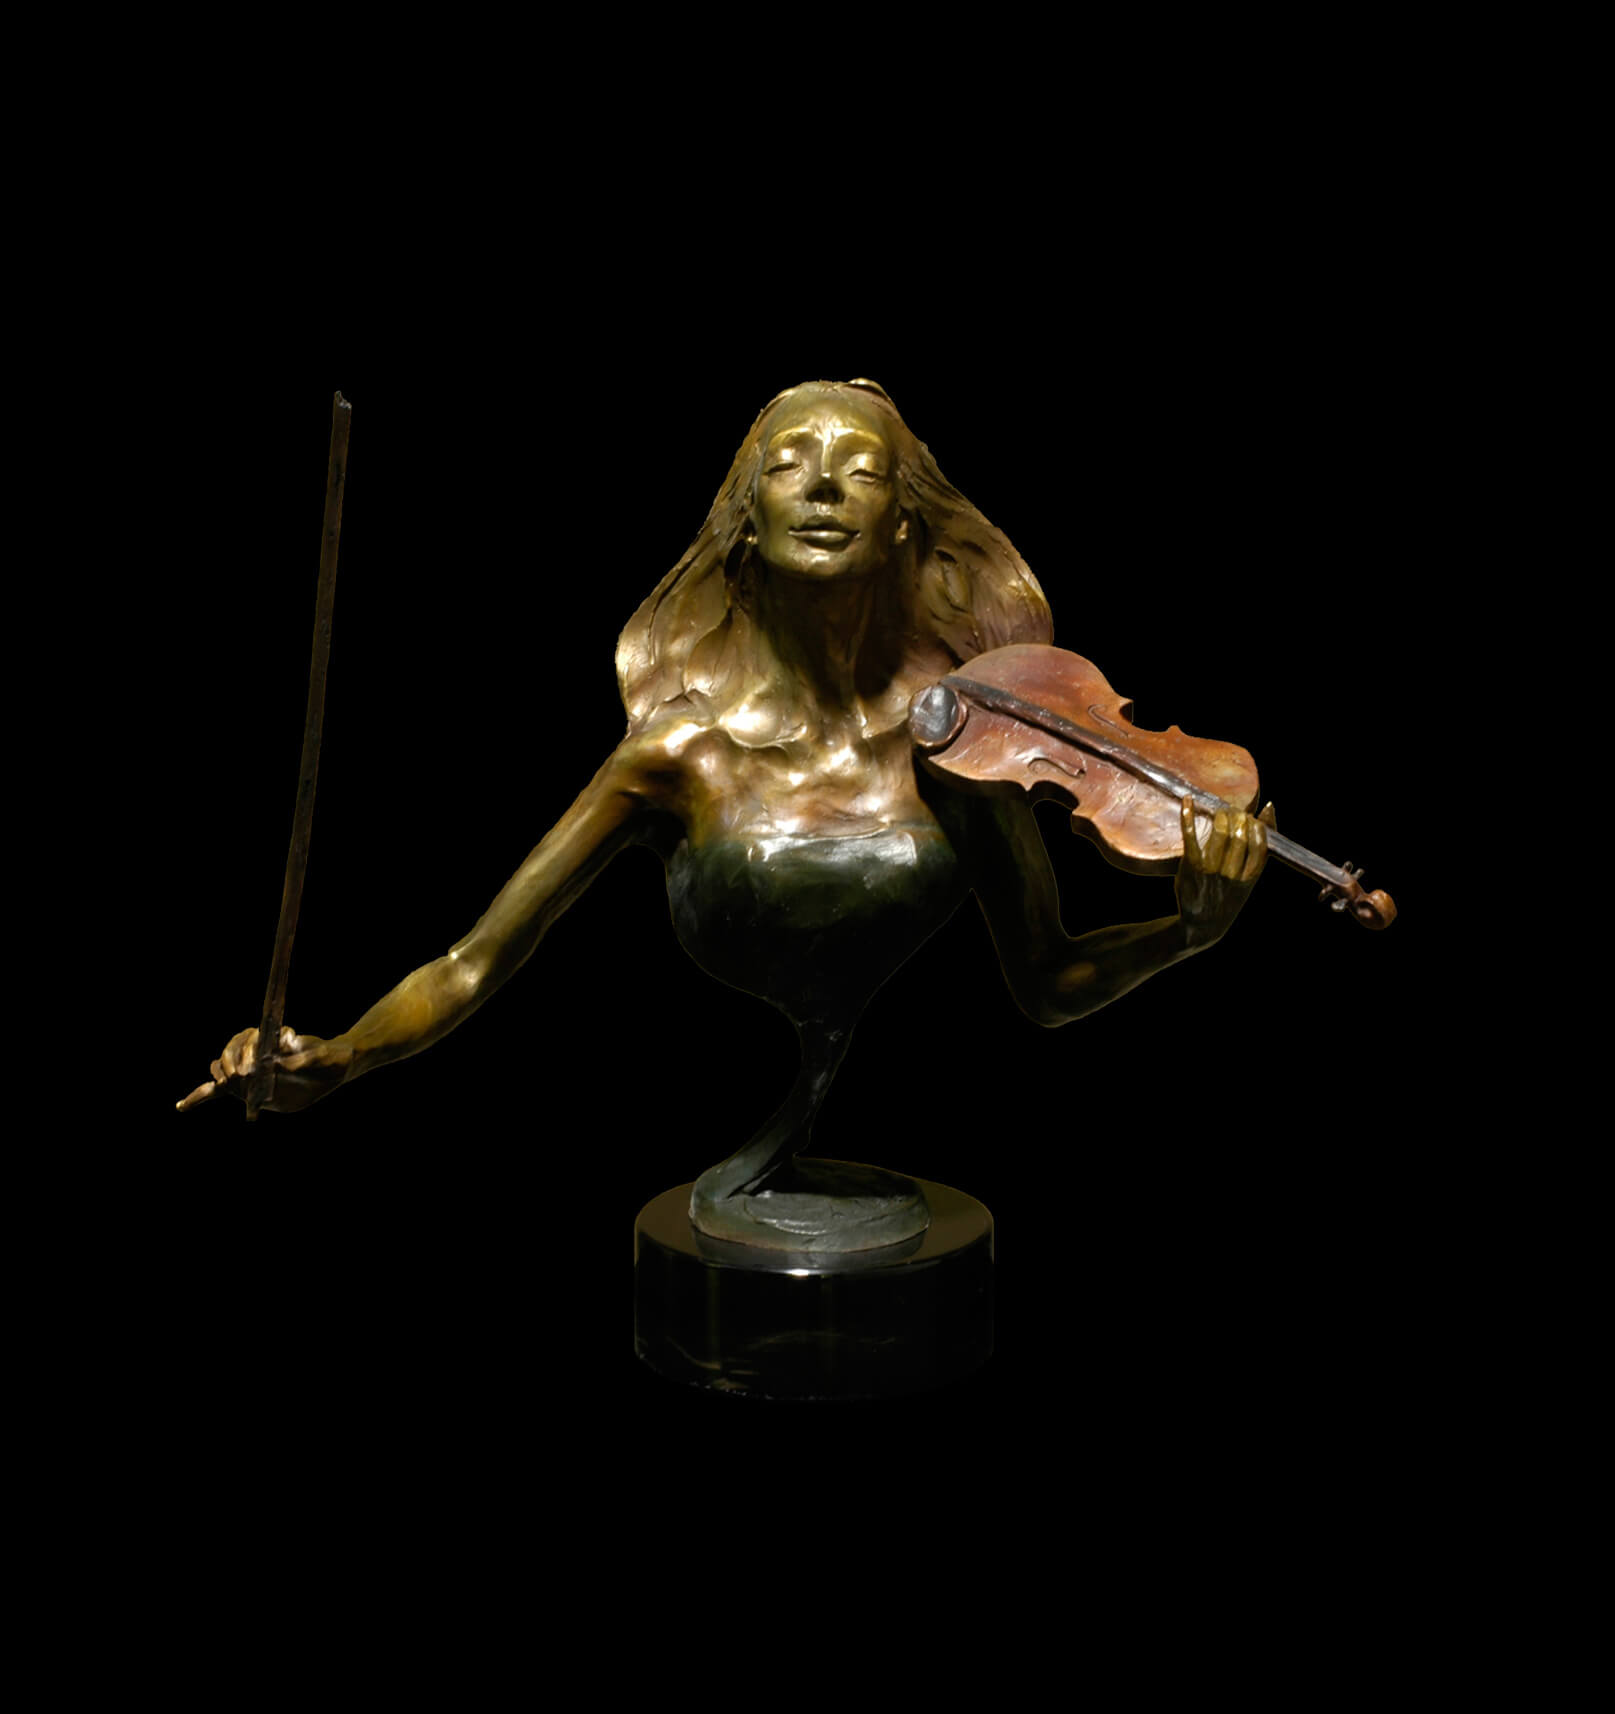 Rapture Bust a female violinist bronze figurative sculpture by Andrew DeVries